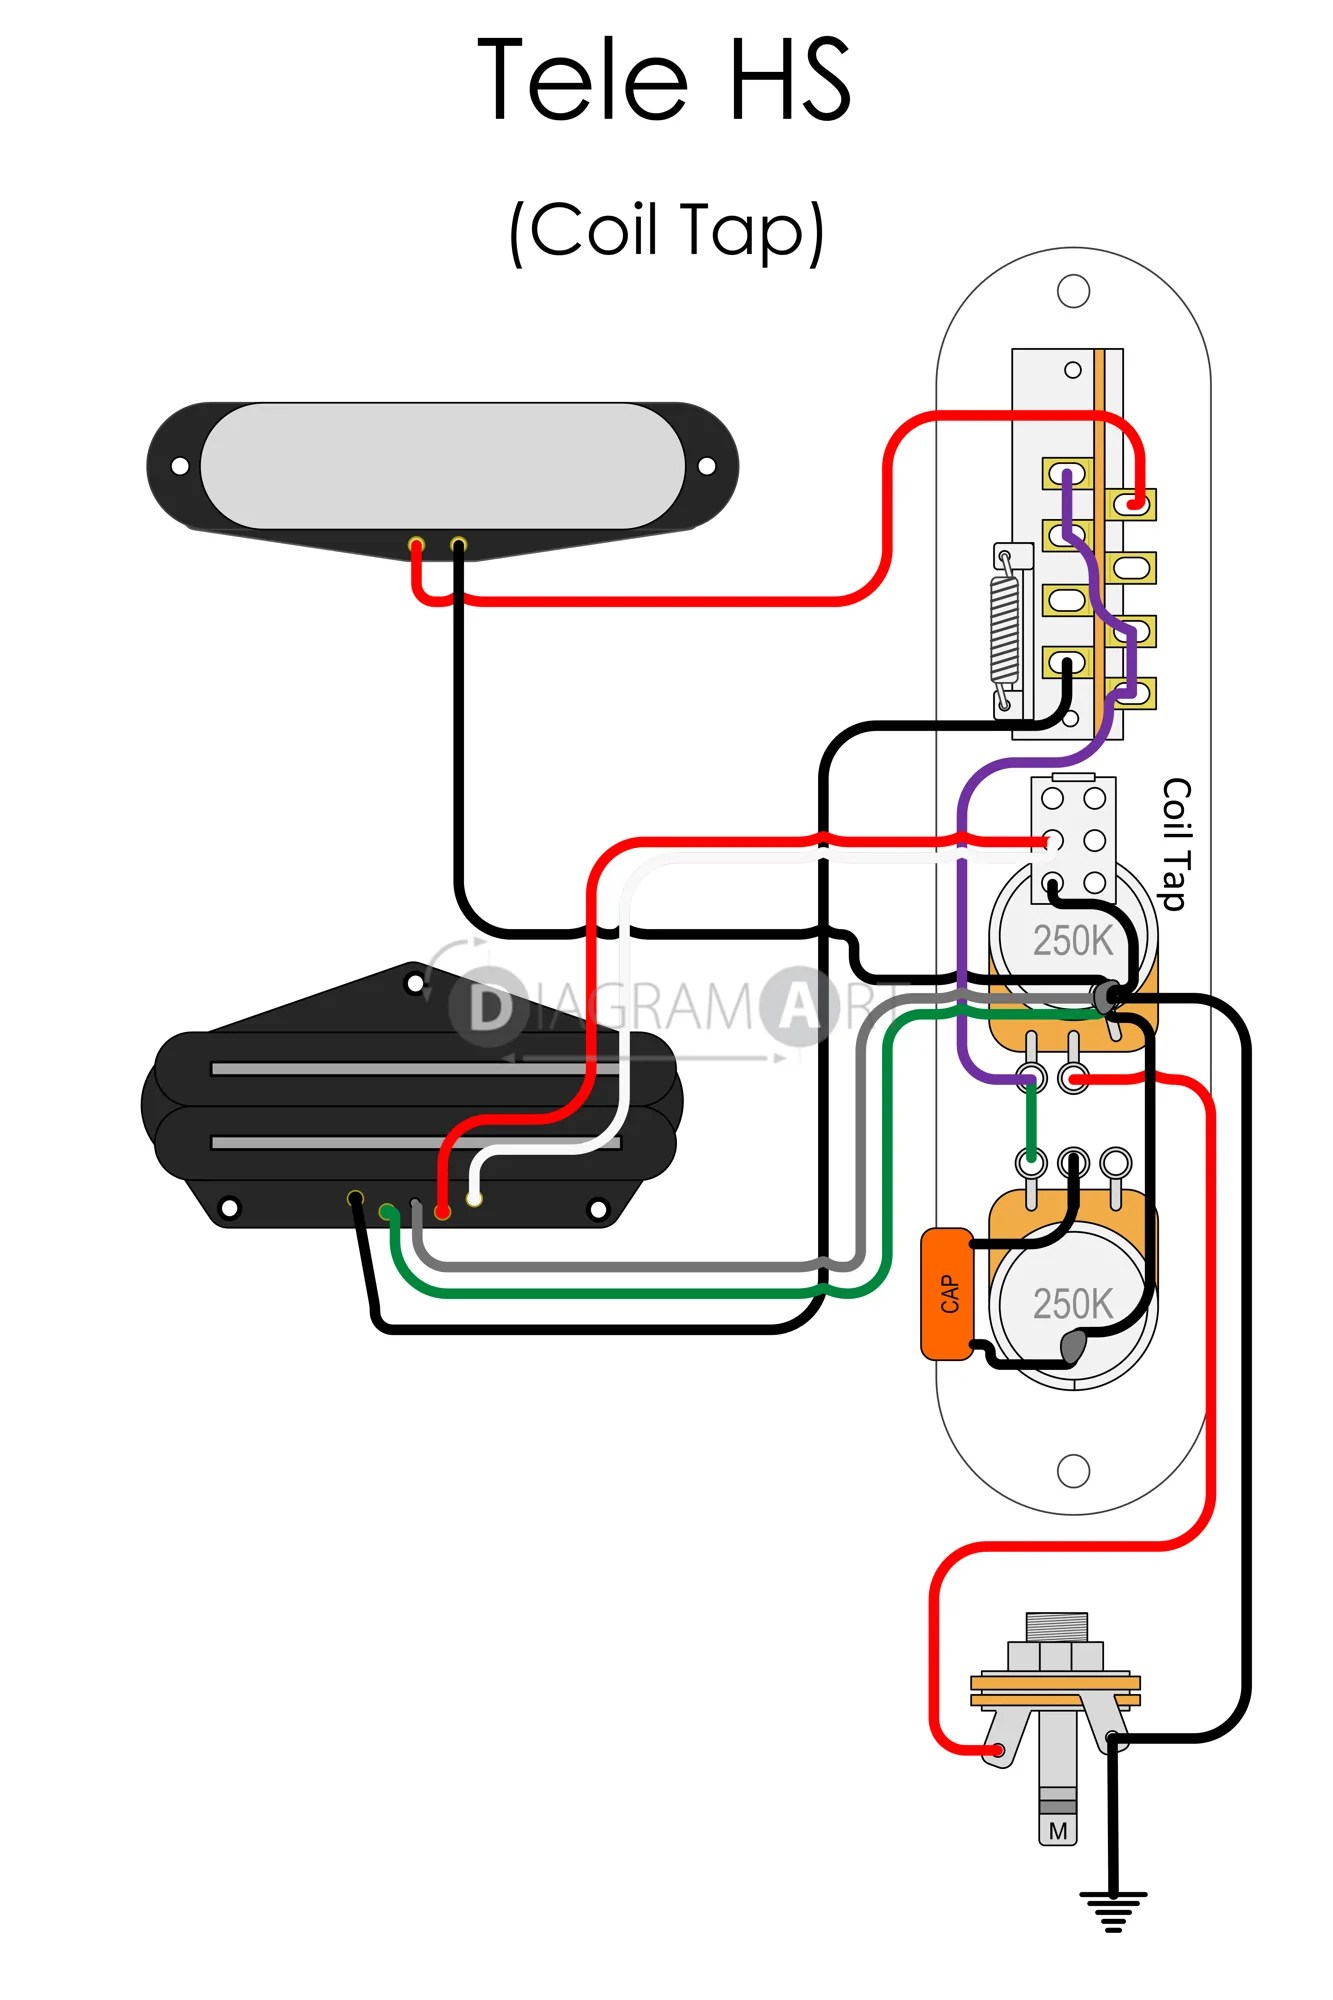 small resolution of electric guitar wiring tele hs coil tap electric circuit coil tap wiring diagram seymour duncan coil tap wiring